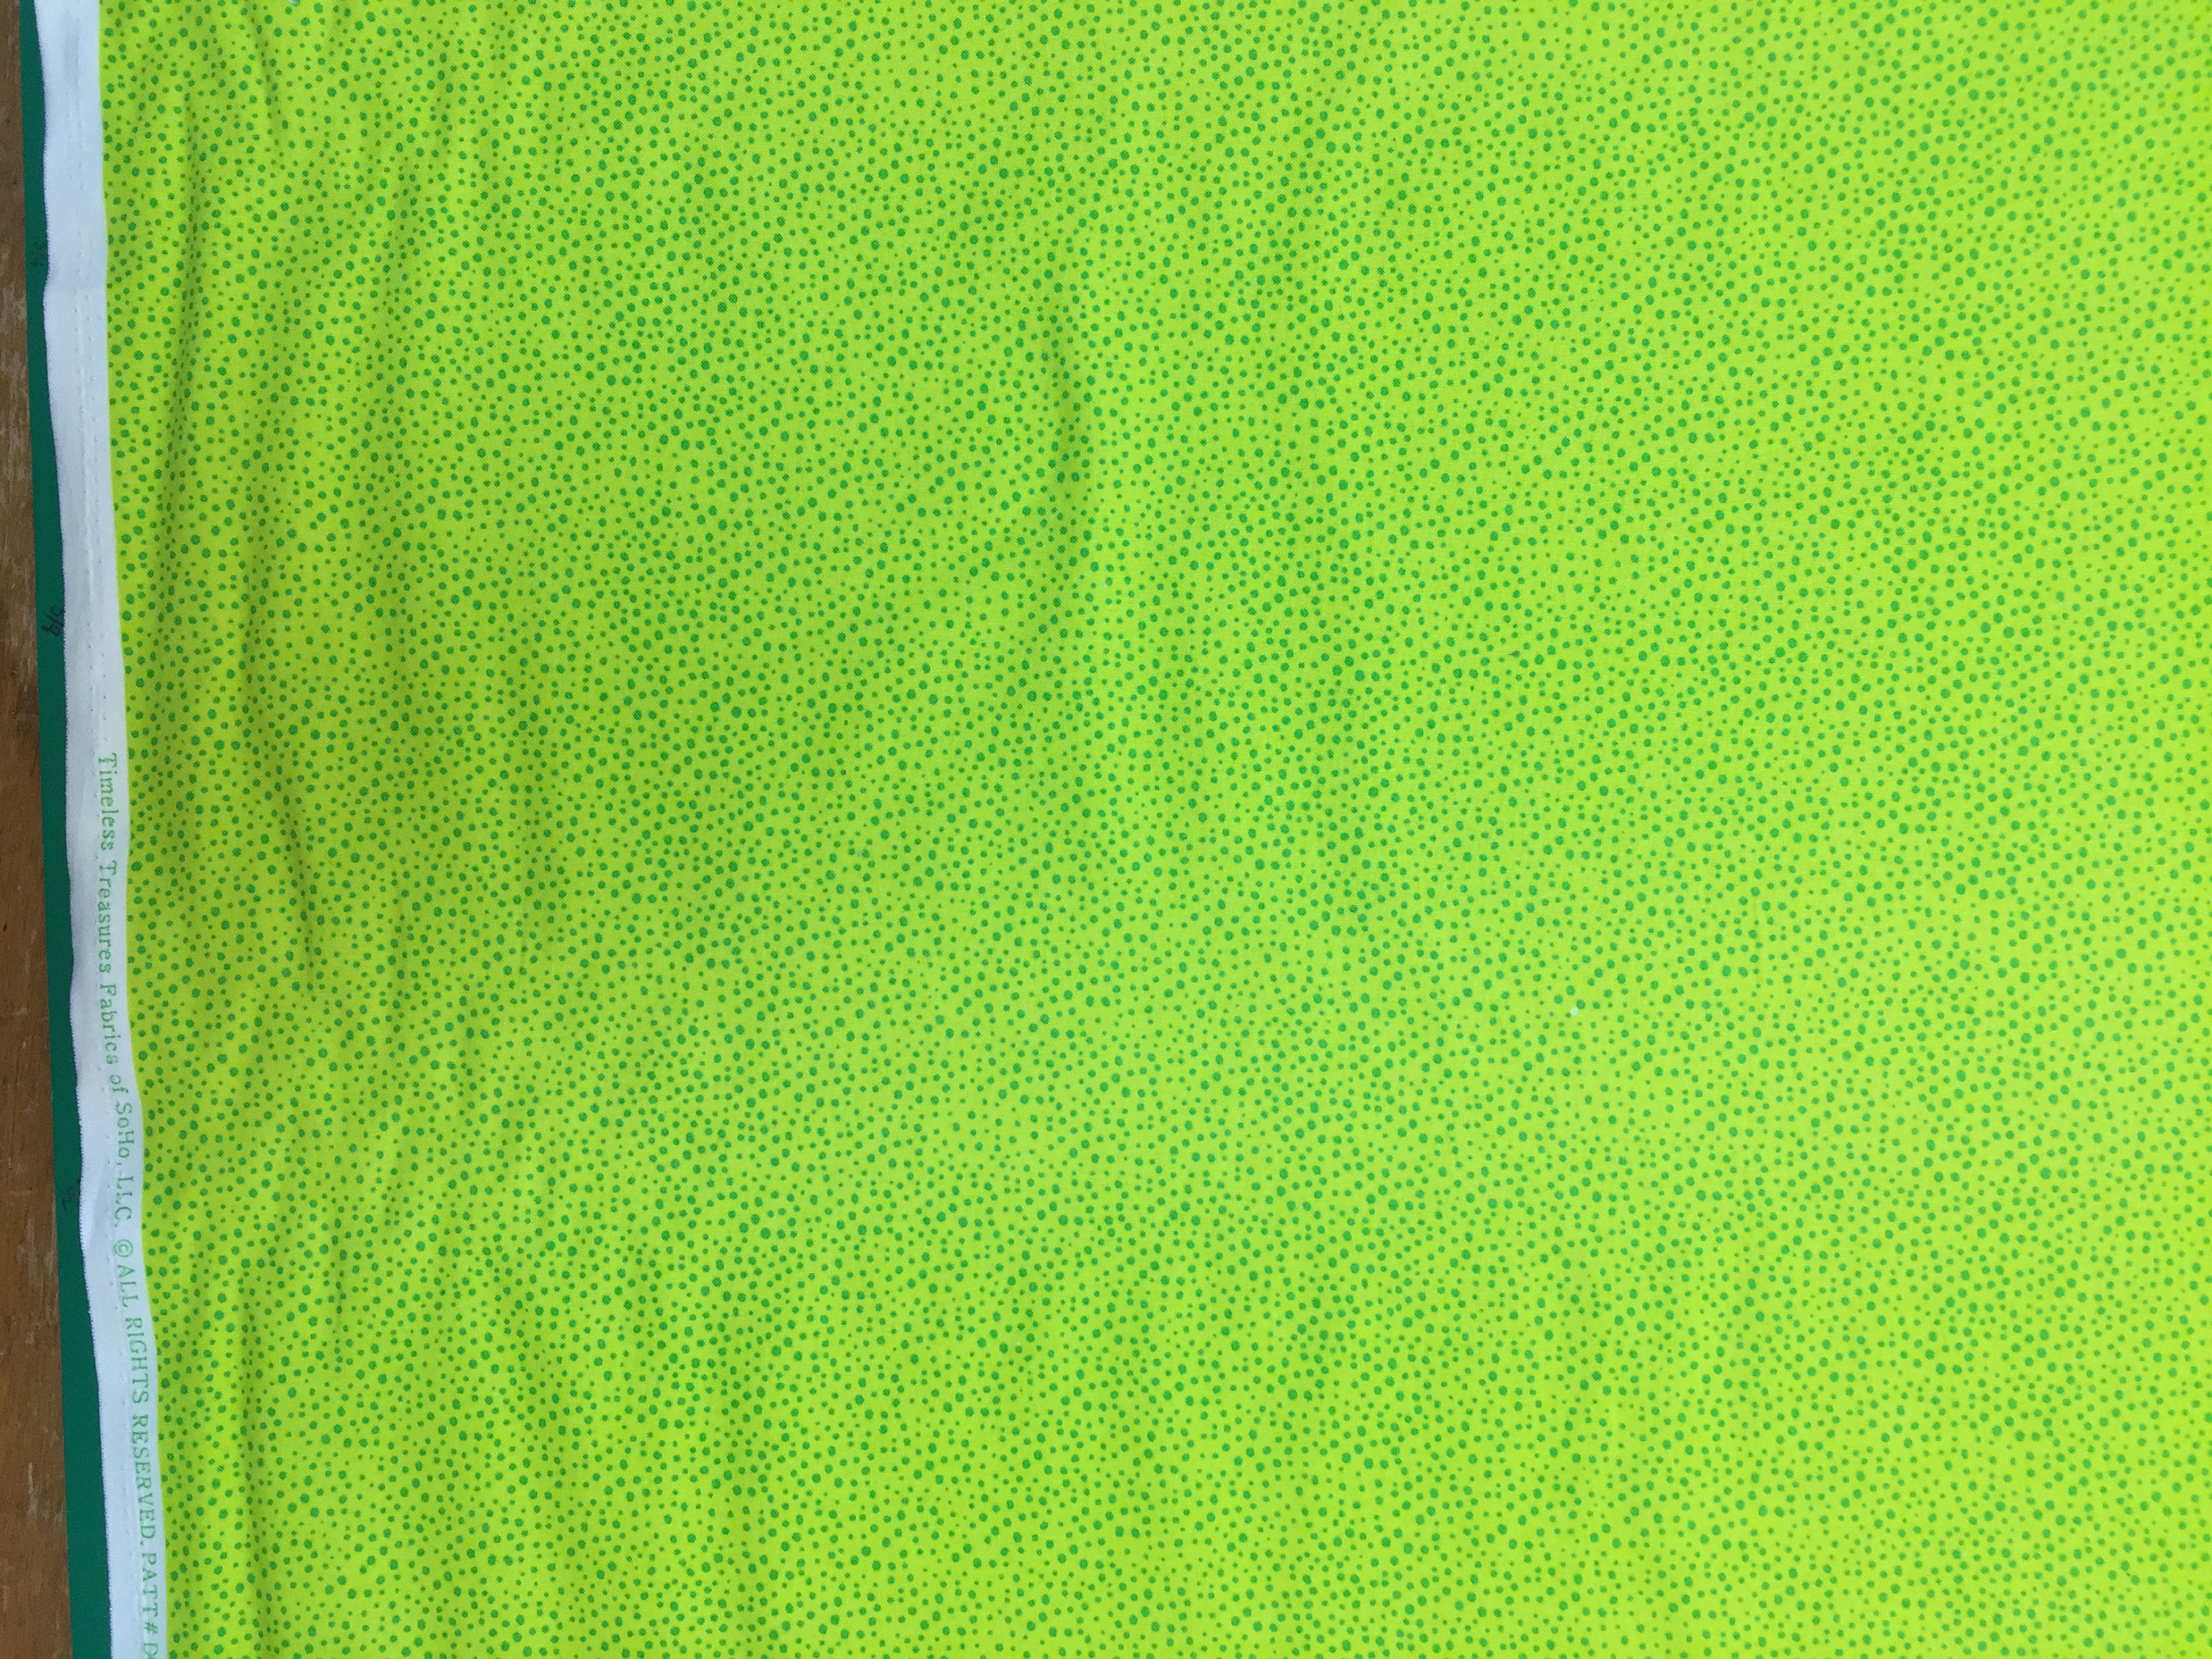 Timeless Treasures Dot C5510 Lime fabric (with green dots)